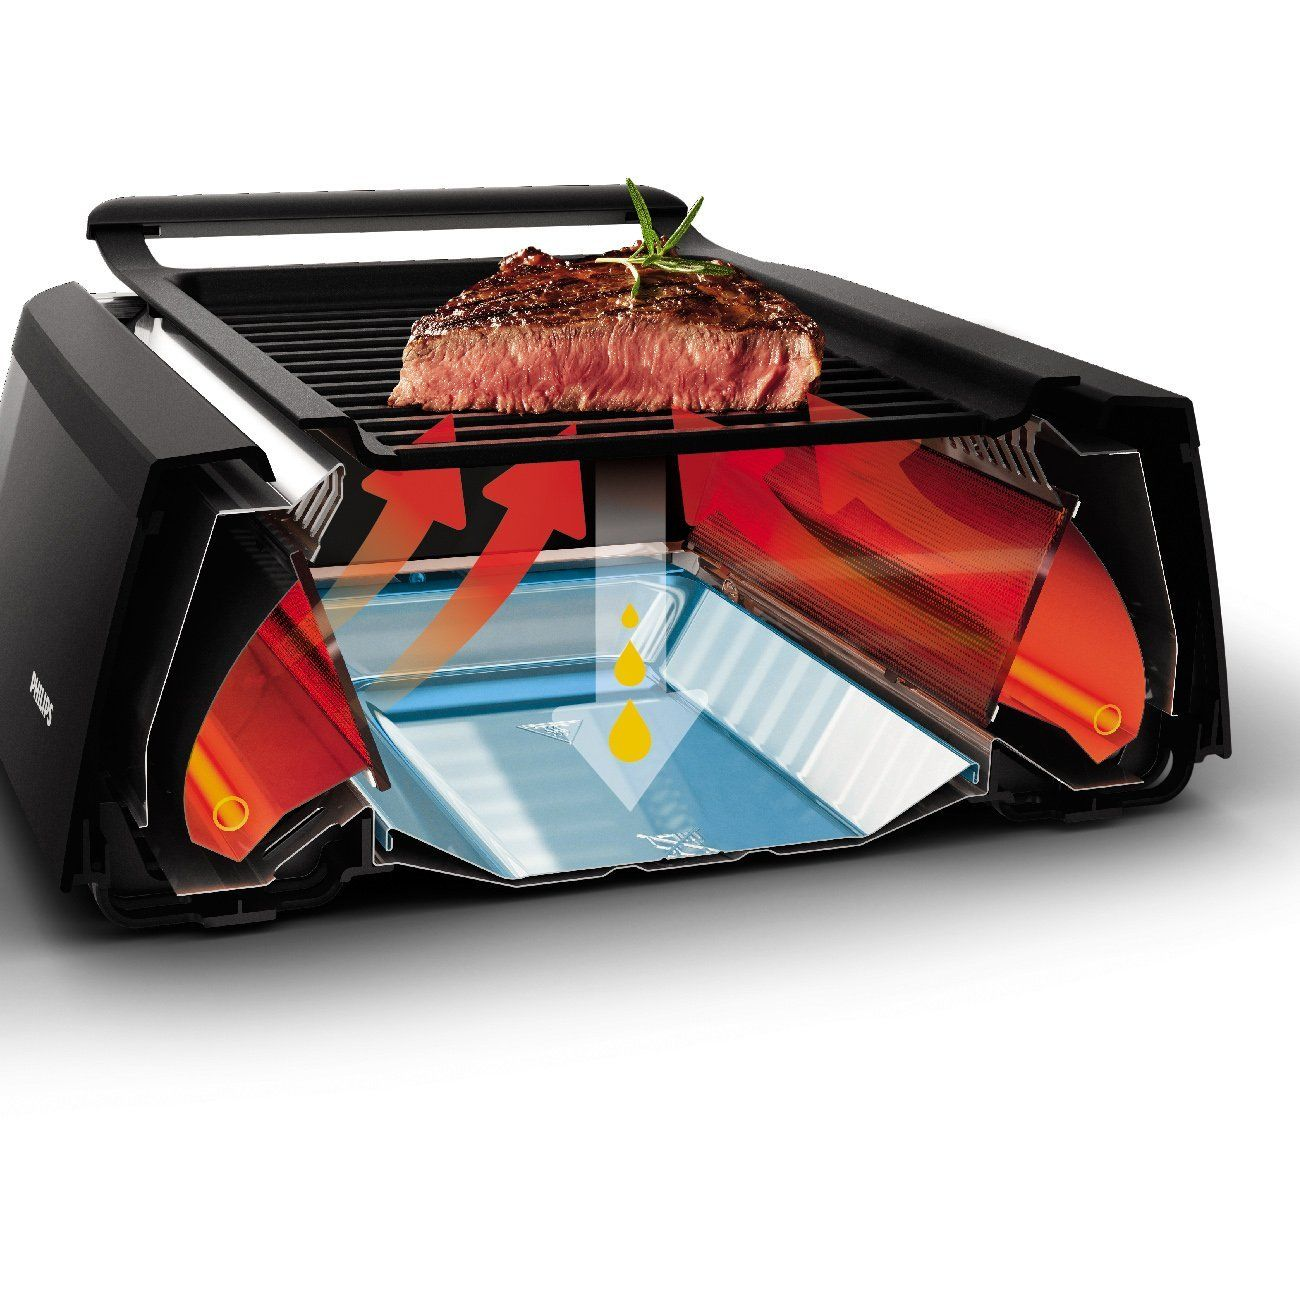 Amazon.com: Philips HD6371/94 Indoor Grill, Black: Kitchen & Dining ...